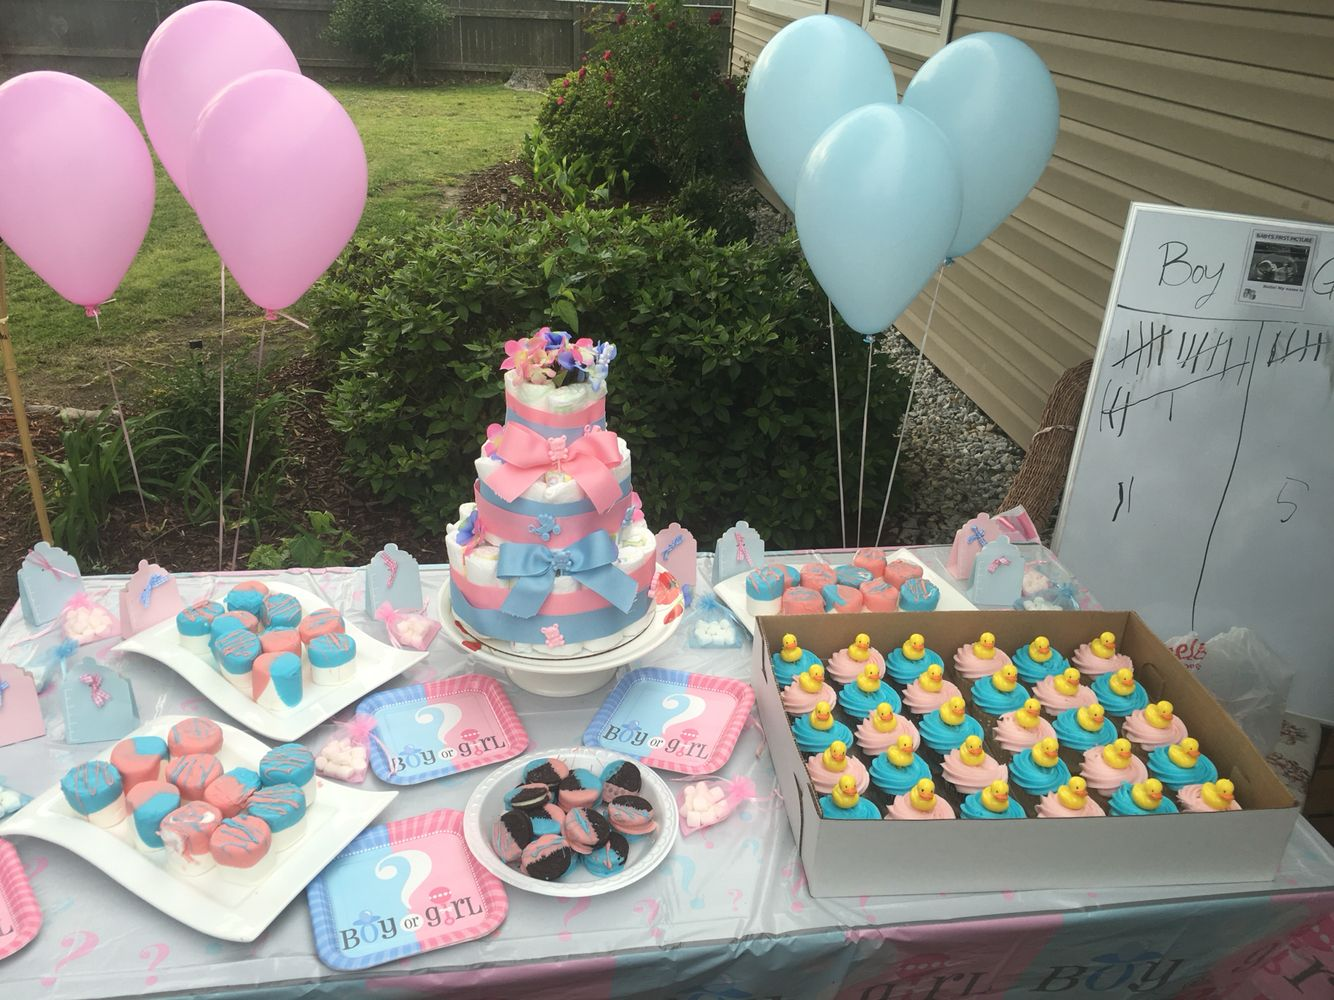 Affordable Gender Reveal Party Walmart Decorations And Sams Club Cupcakes Dollar Tree Favors